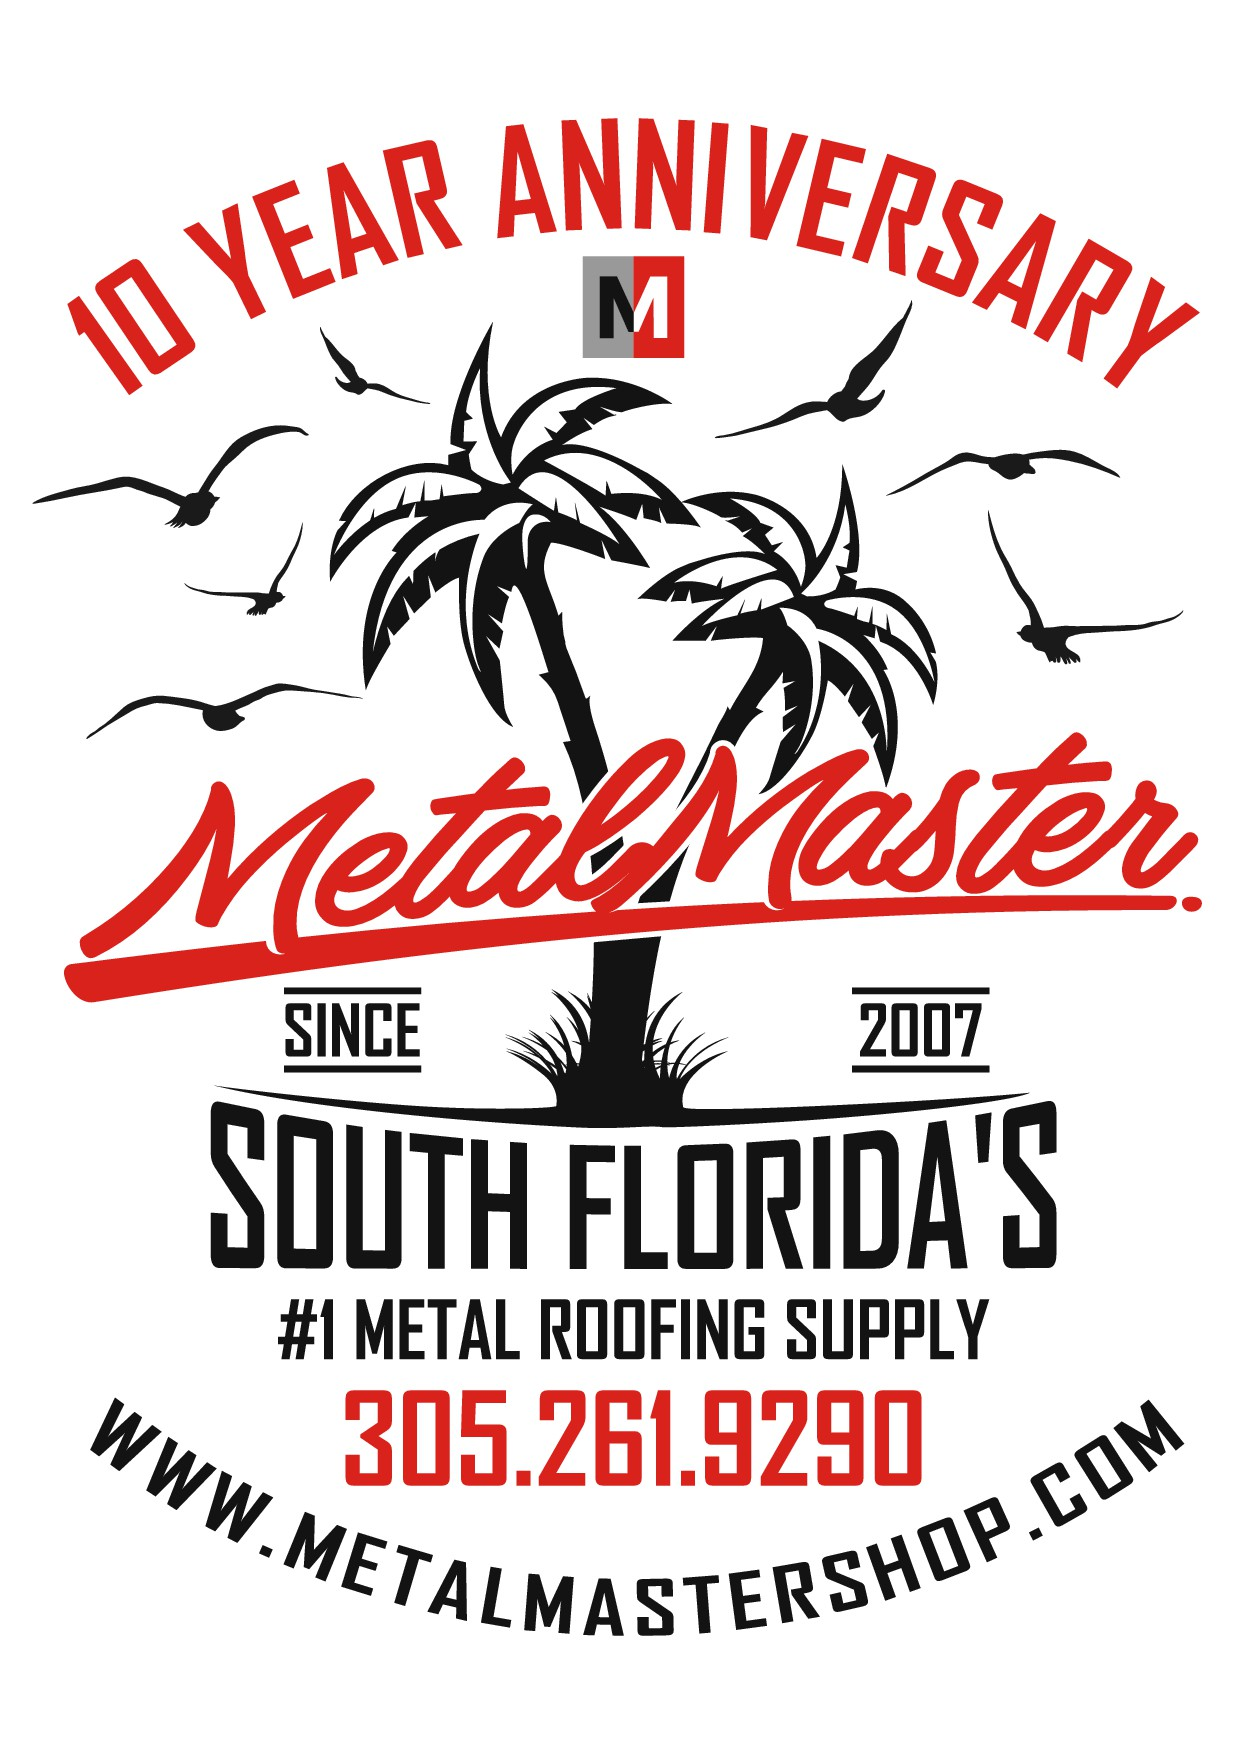 Design a celebratory 10 year anniversary shirt for a Miami-based metal roofing supplier.